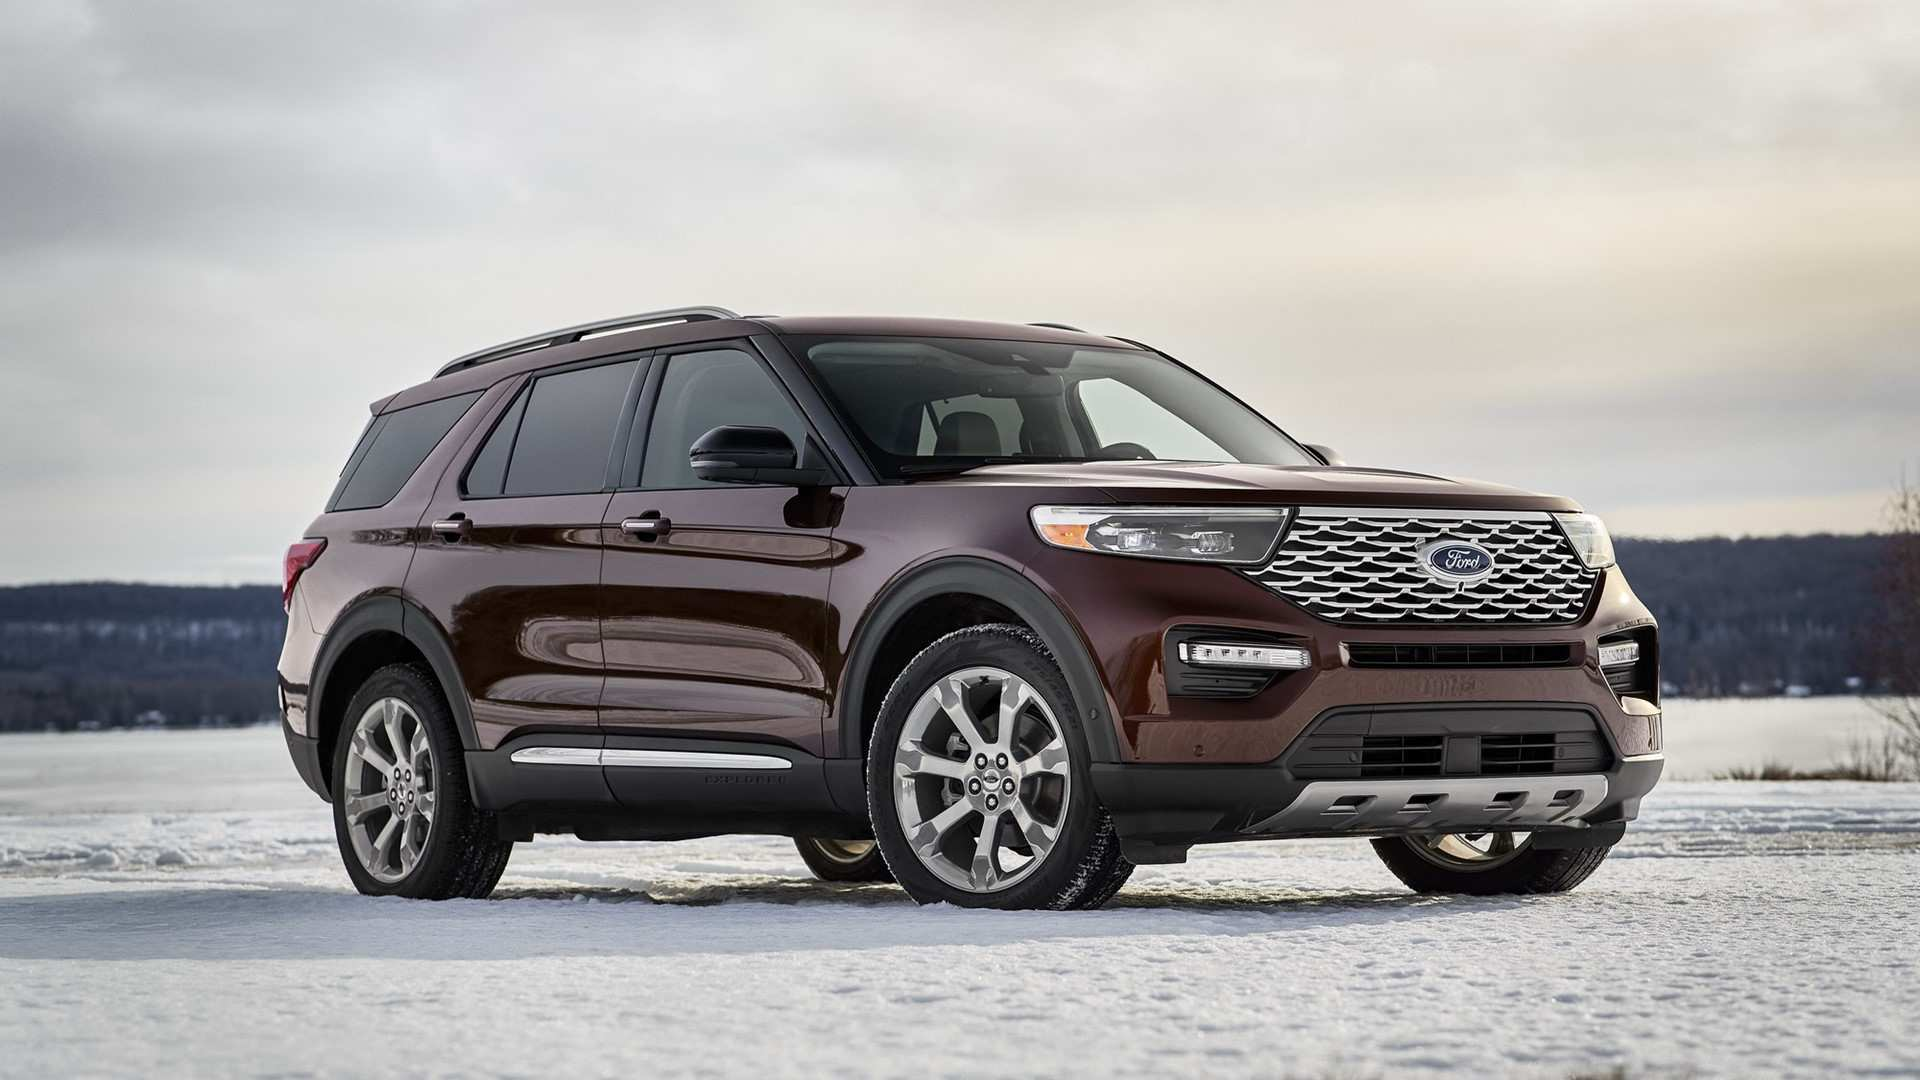 90 New When Can You Order A 2020 Ford Explorer Redesign